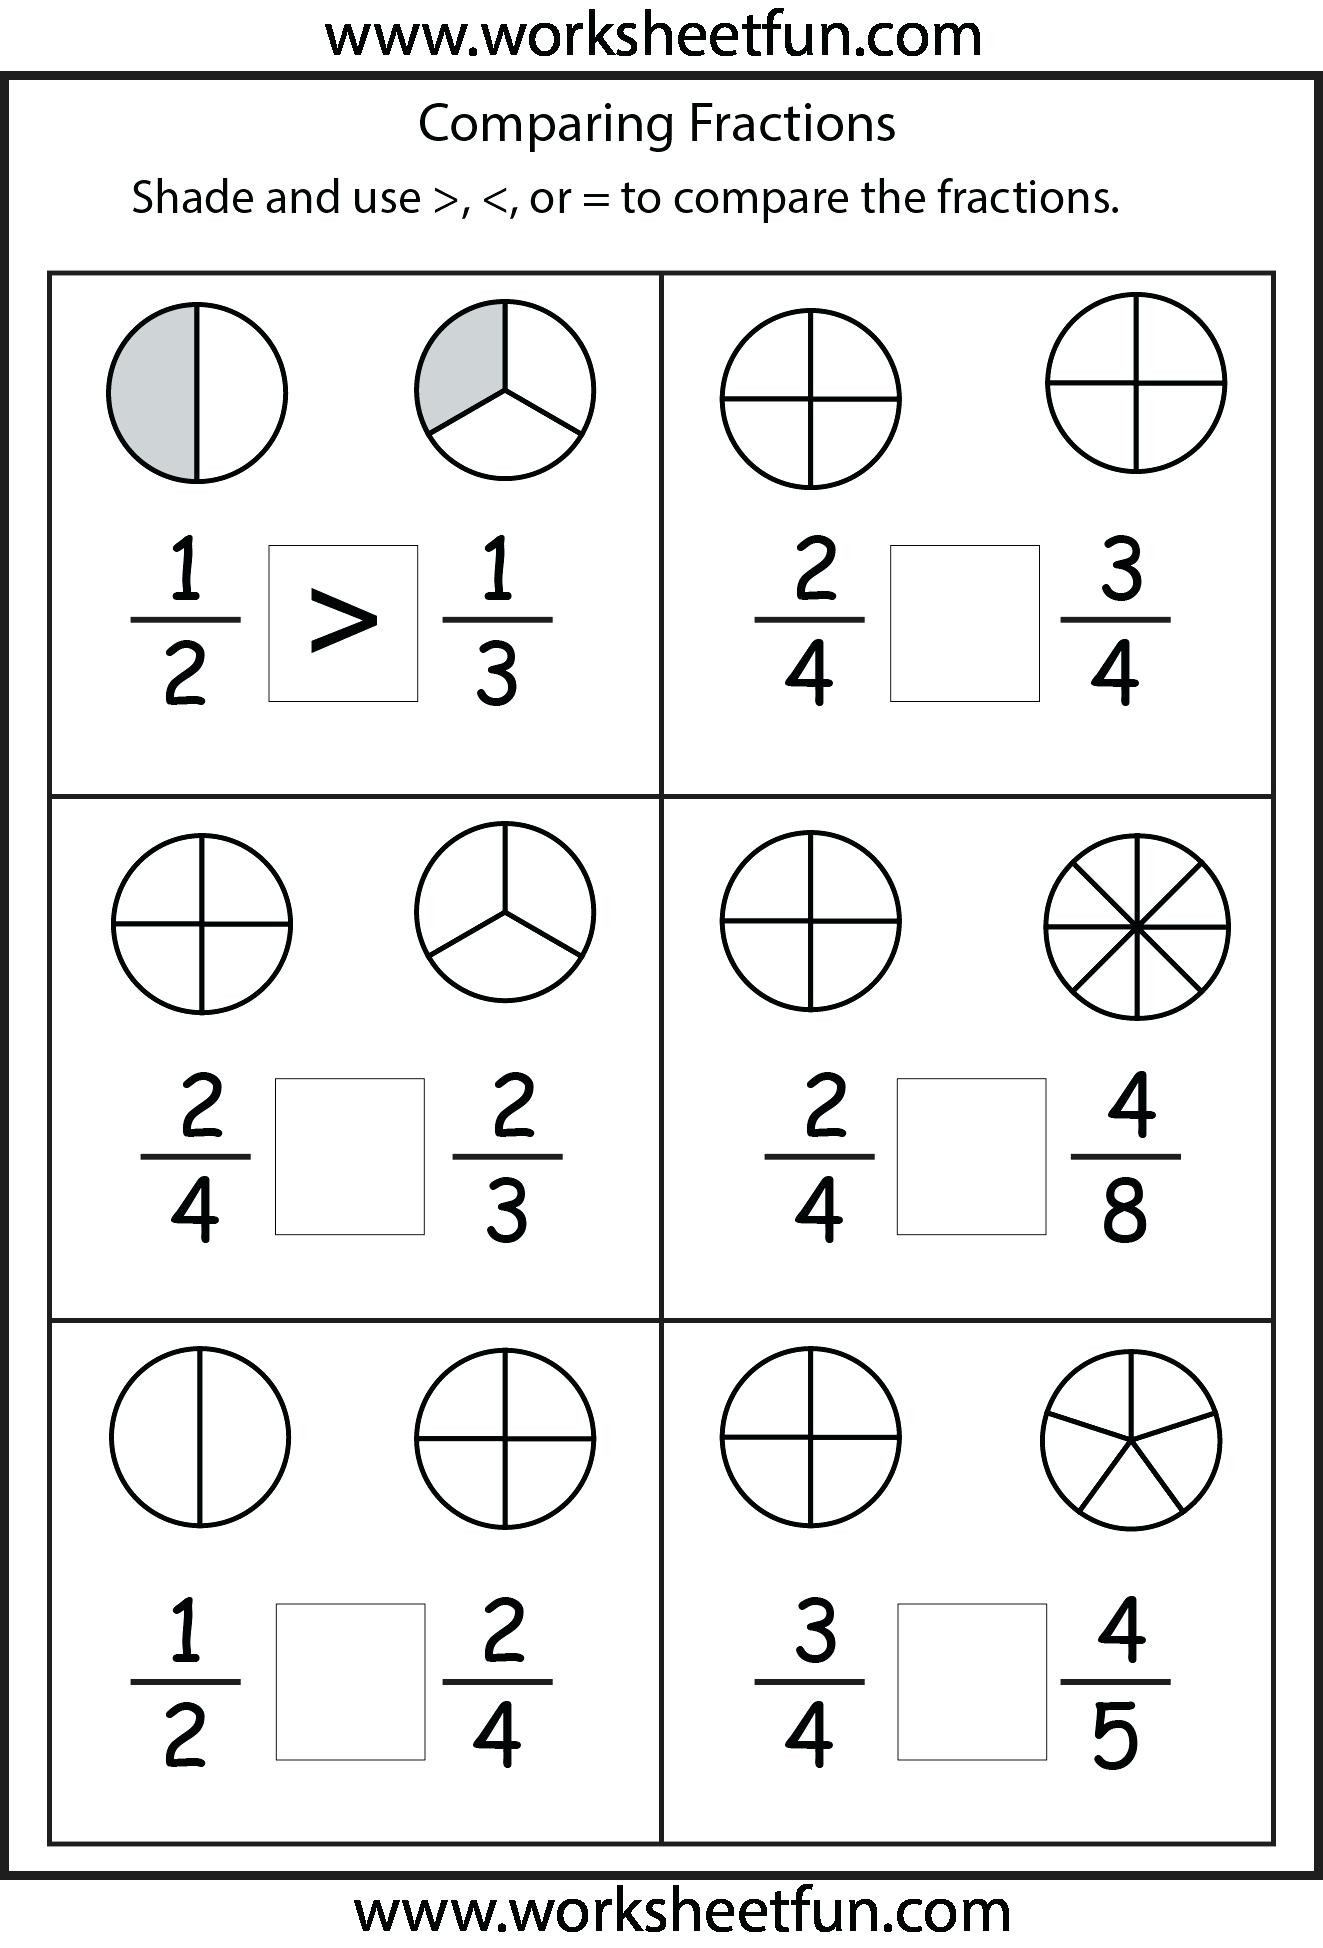 Decomposing Fractions Worksheets 4th Grade First Grade Fractions Worksheets Fraction Worksheets for